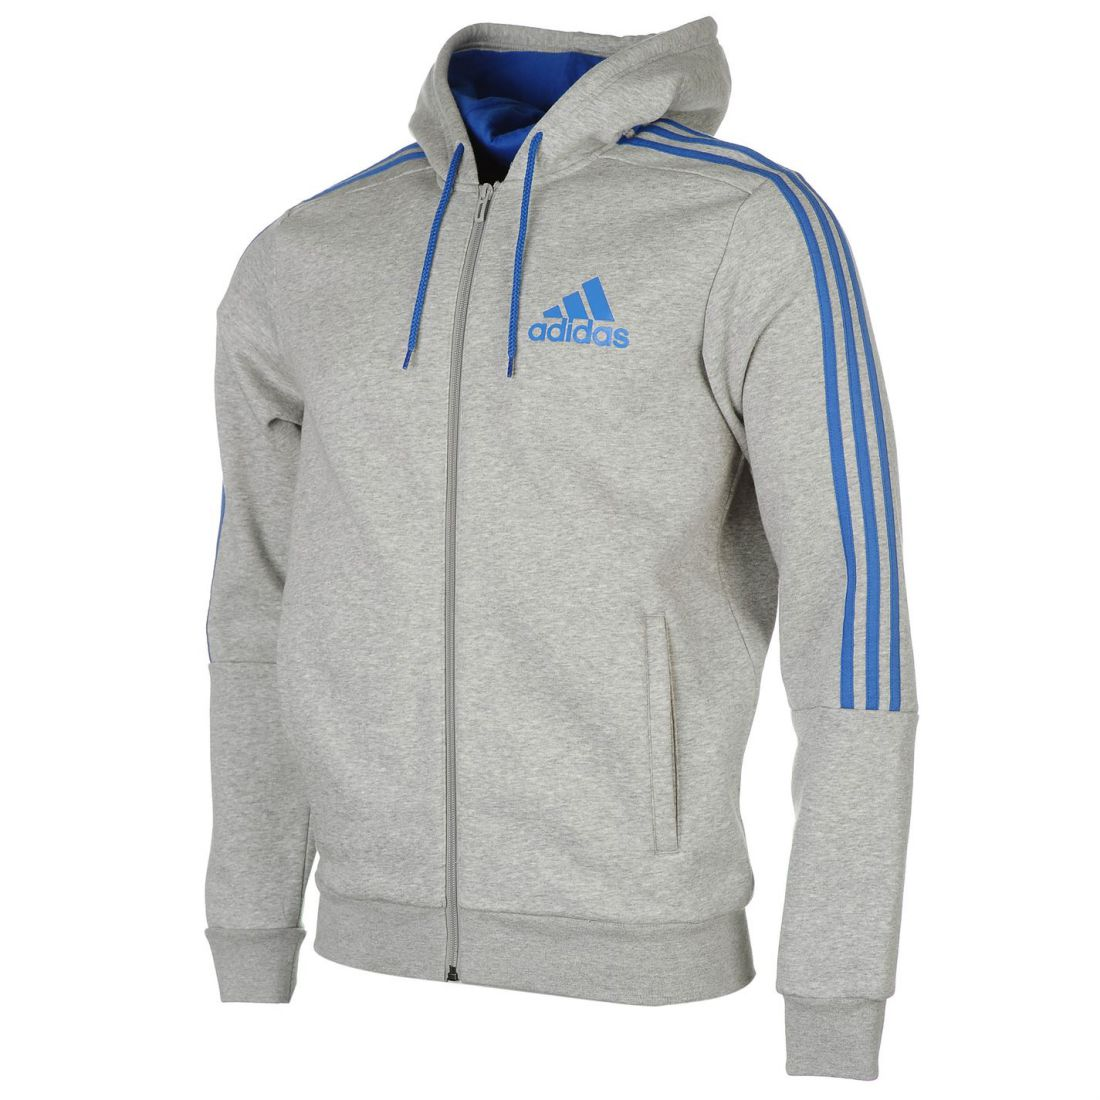 Details about adidas Mens 3 Stripe Hoody Full Zip Hoodie Long Sleeve Hooded  Warm Casual Top 3532d3930